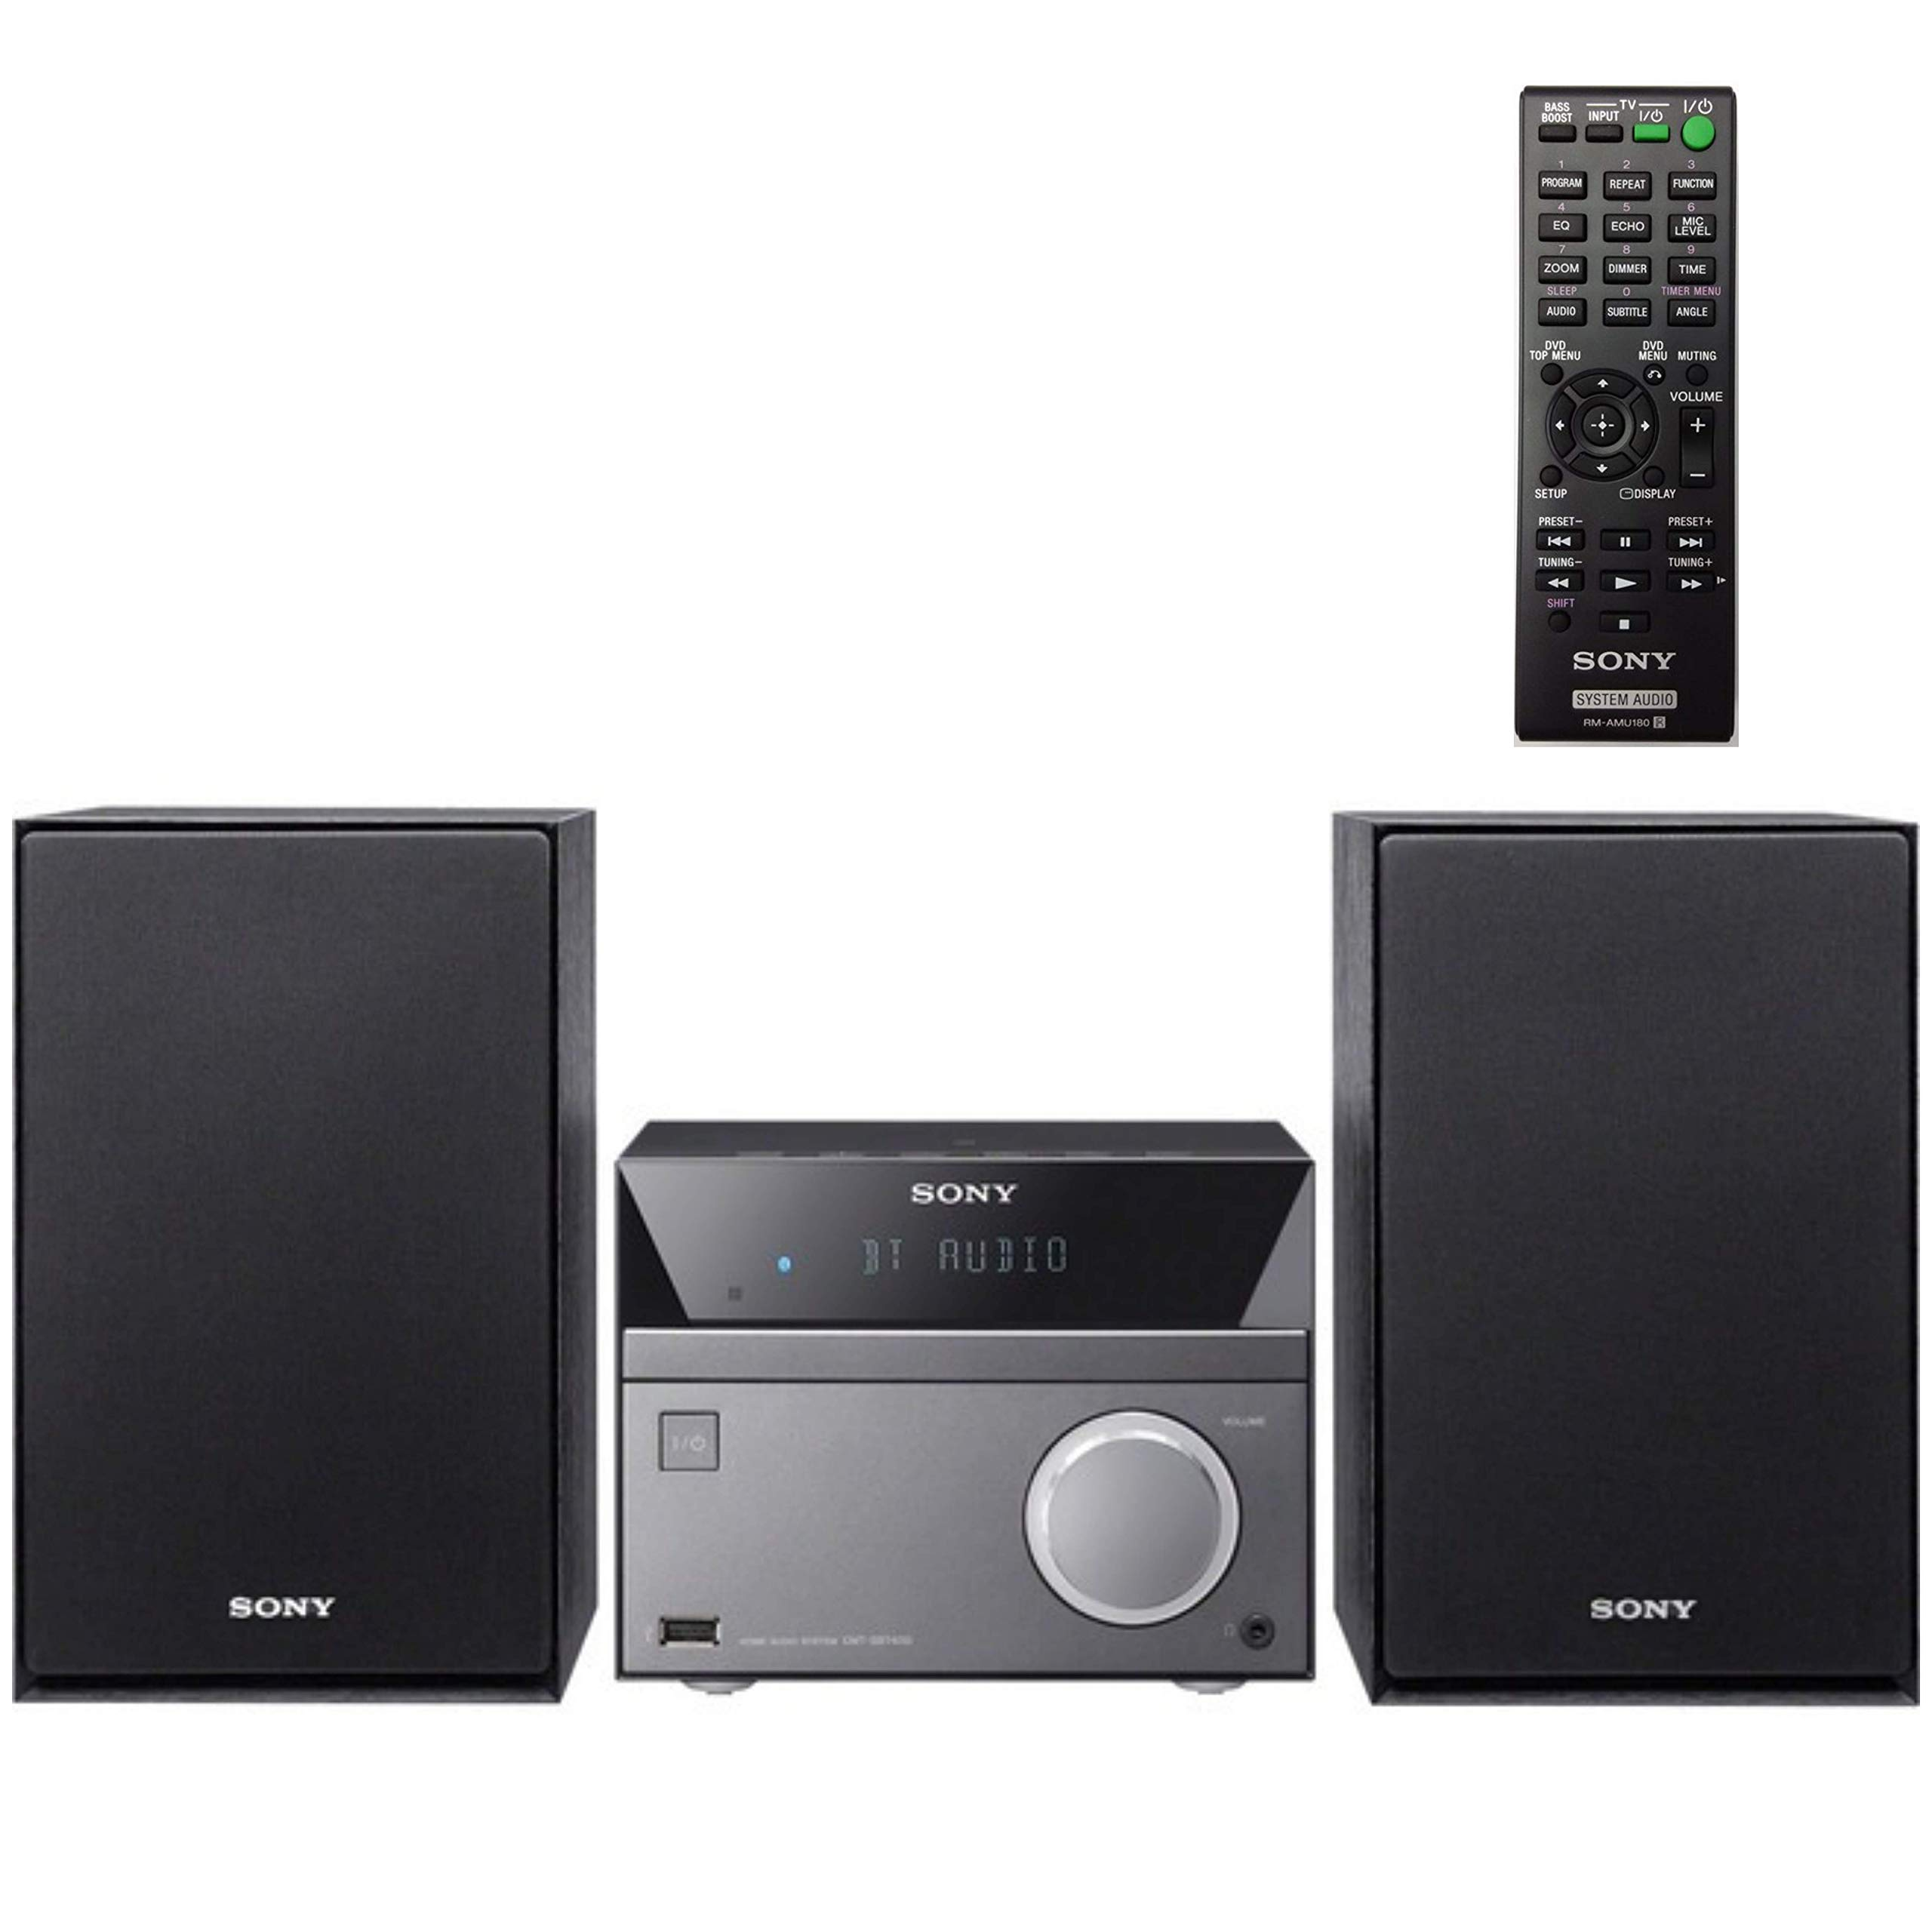 Sony Compact Stereo Sound System for House with Bluetooth Wireless Streaming NFC, Micro Hi-Fi 50W, CD Player with Separate Speakers, AM/FM Radio, Mega Boost, USB Playback and Charge, Remote Control by Sony